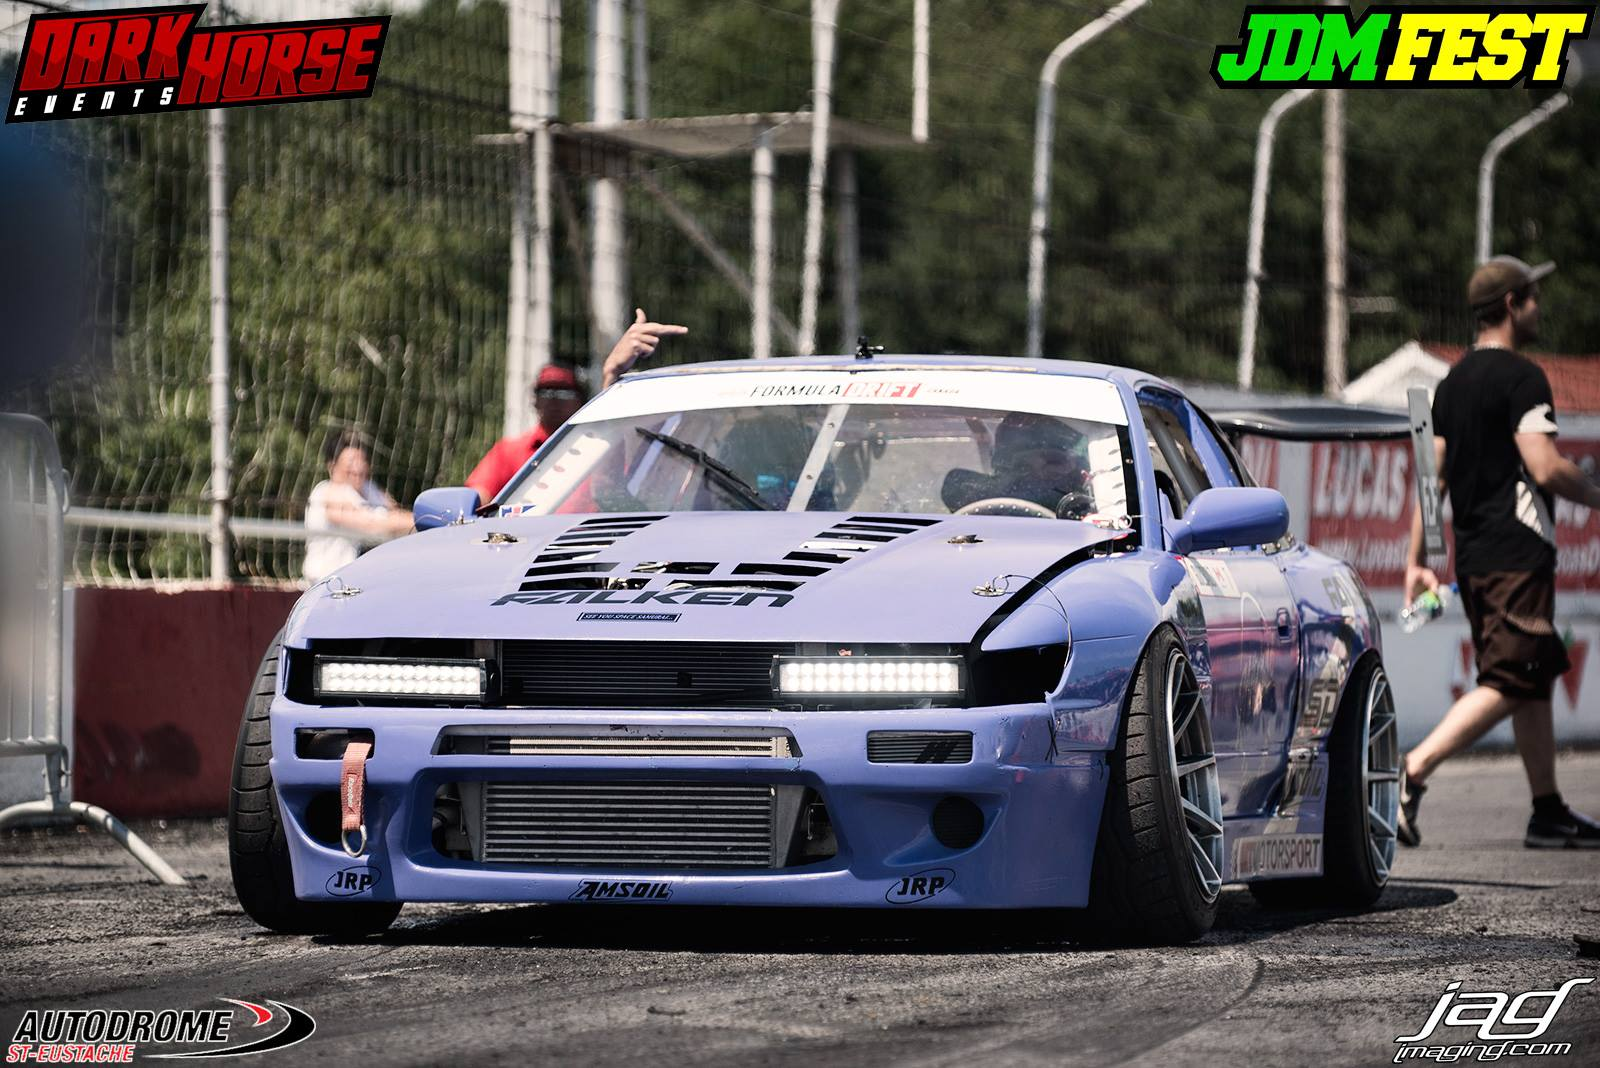 1989 Nissan 240sx With Ls Turbo Drift Car For Sale 18000